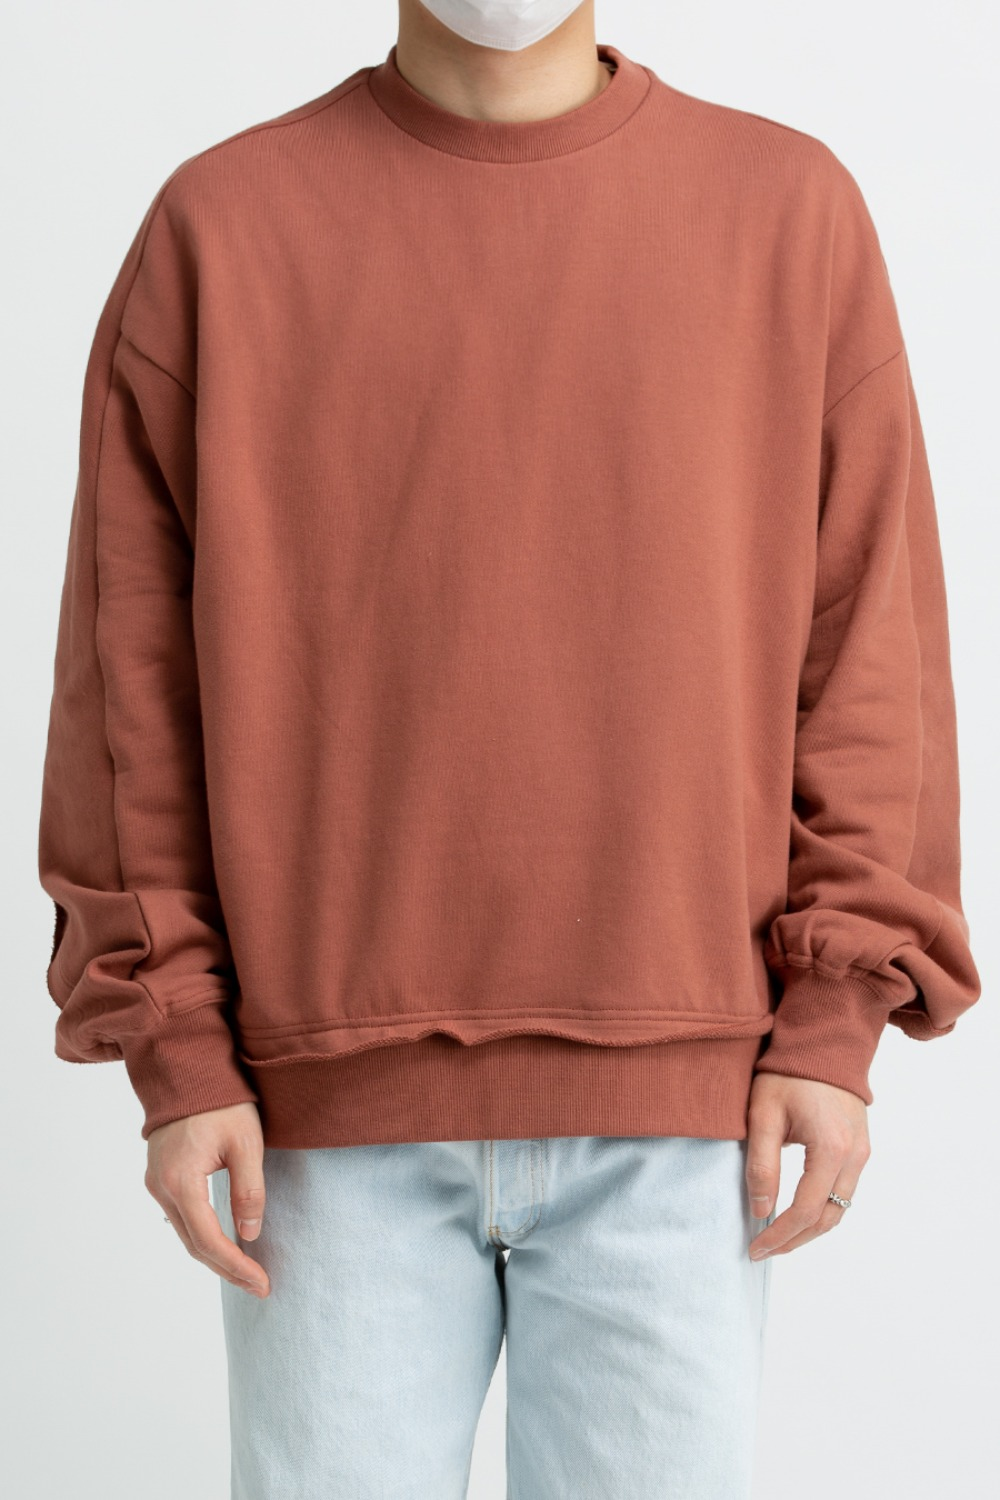 RAW EDGED CUT SWEATSHIRT CAVERN CLAY